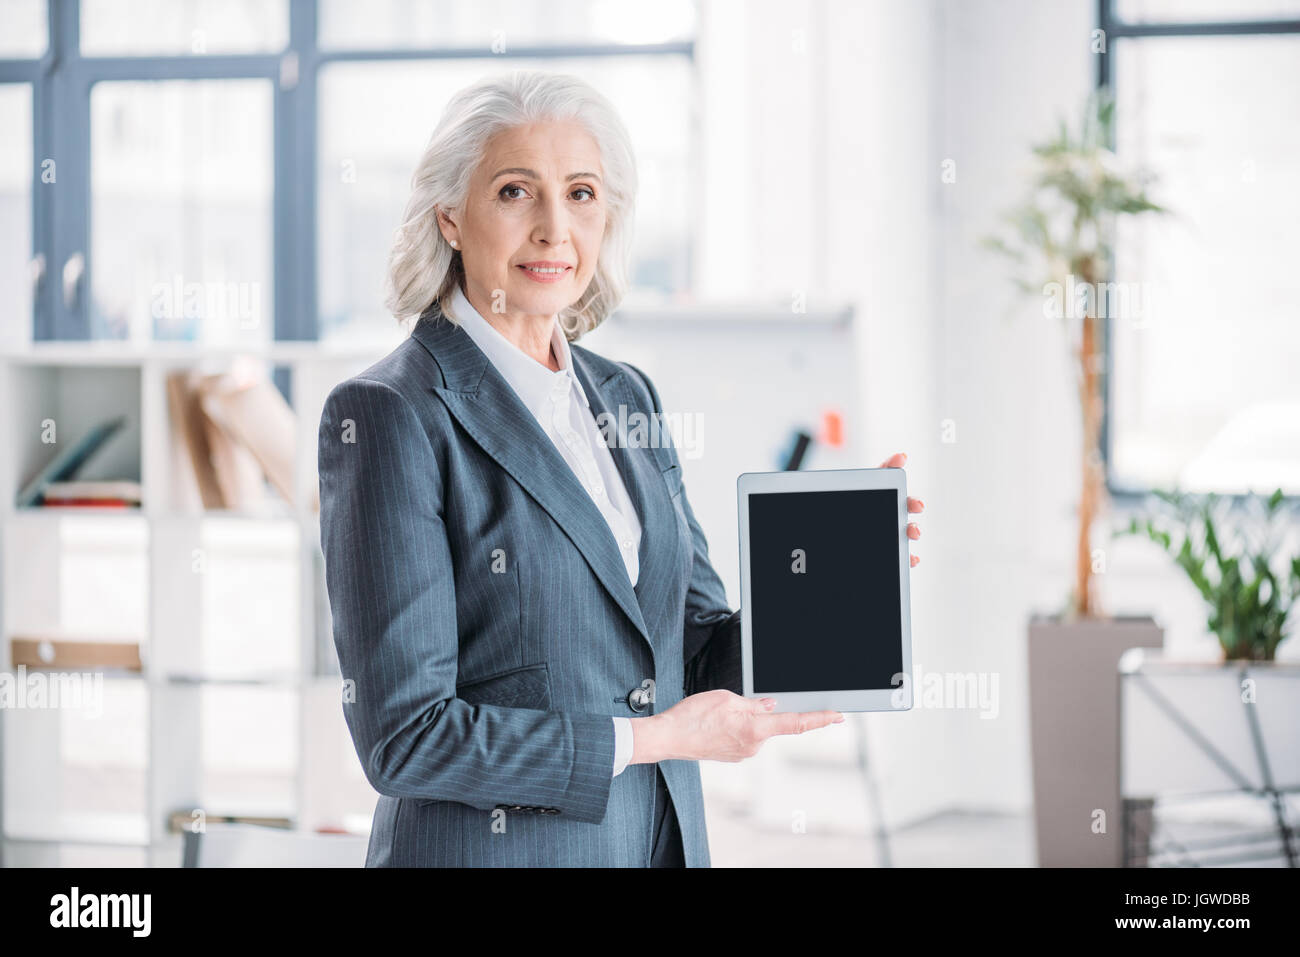 Smiling senior businesswoman standing in office and holding digital tablet with blank screen - Stock Image